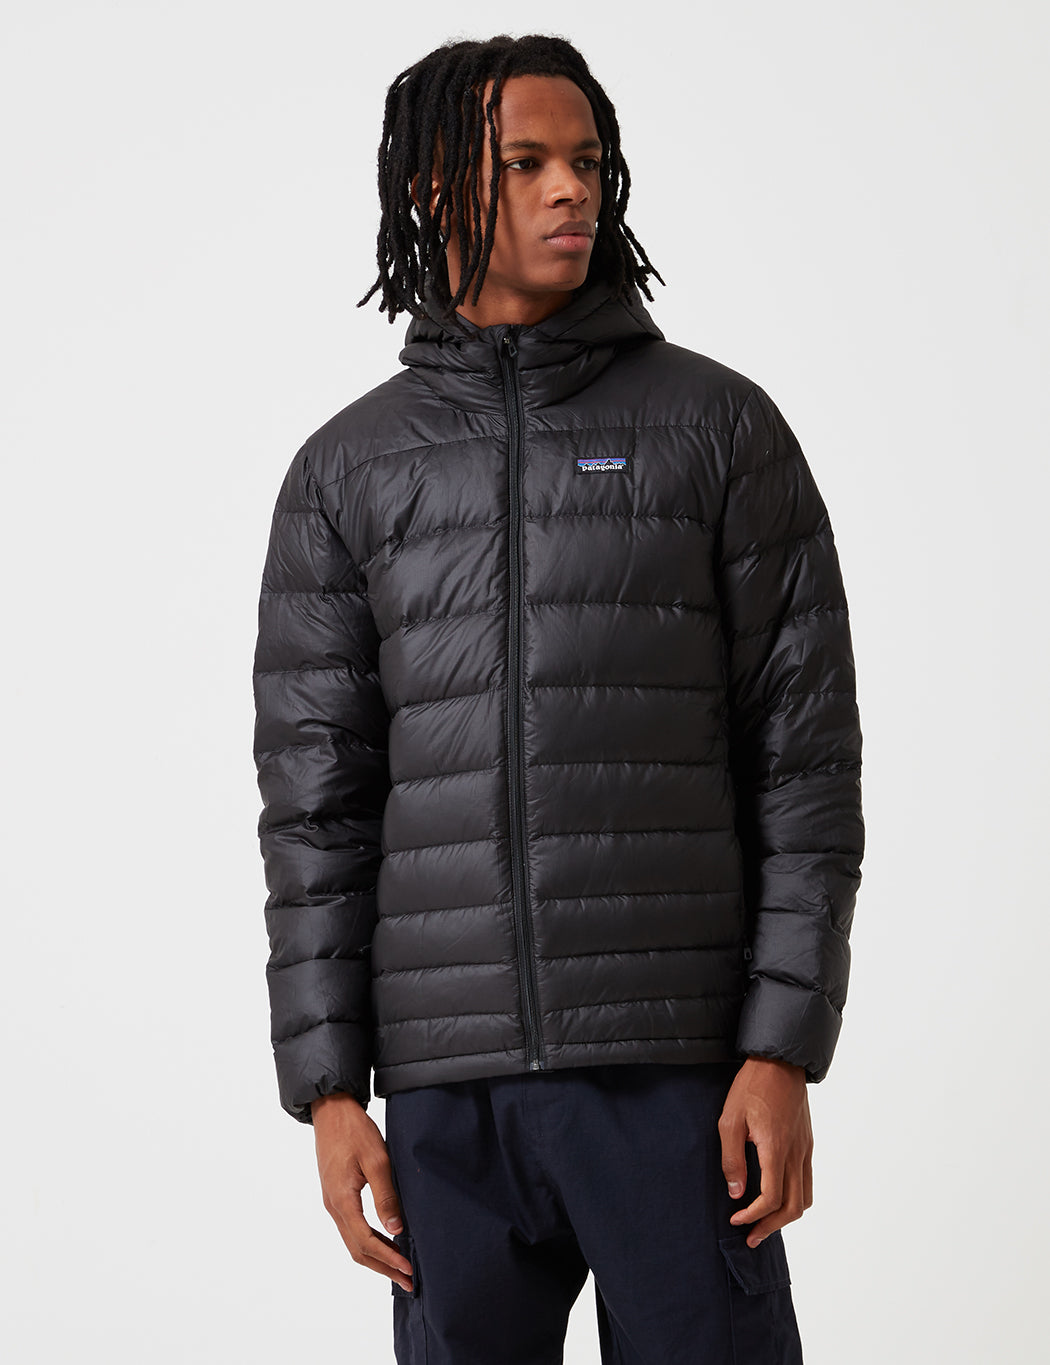 Patagonia Hi Loft Down Hooded Jacket - Black | URBAN EXCESS.